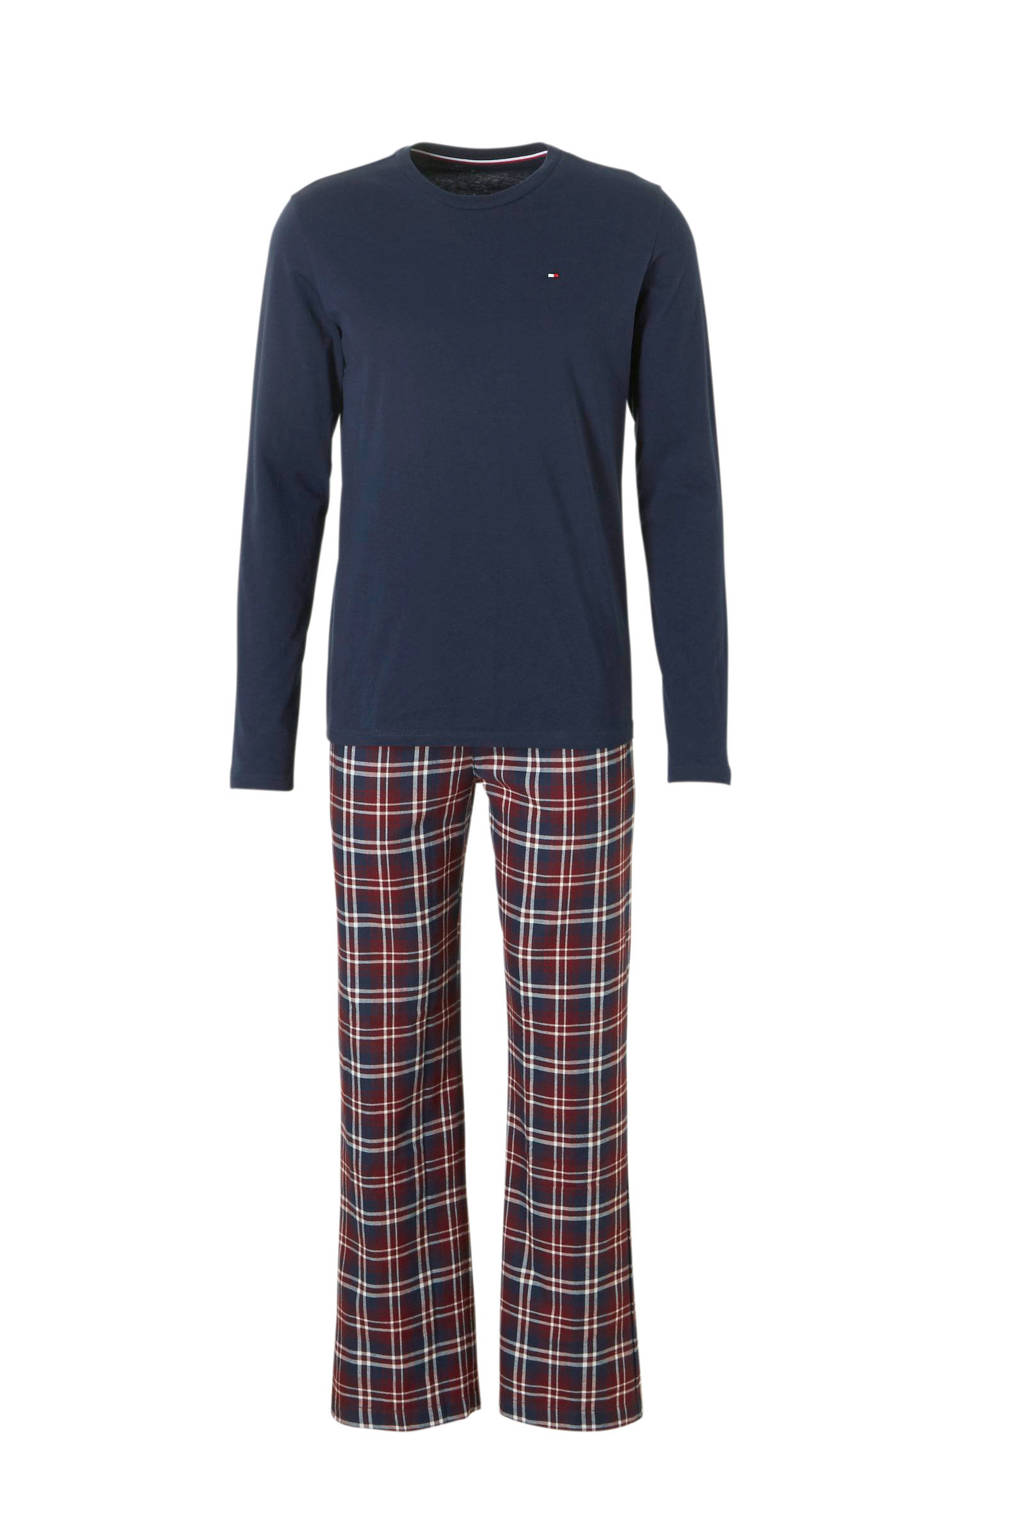 Tommy Hilfiger pyjama met ruit donkerblauw, Donkerblauw/rood/wit